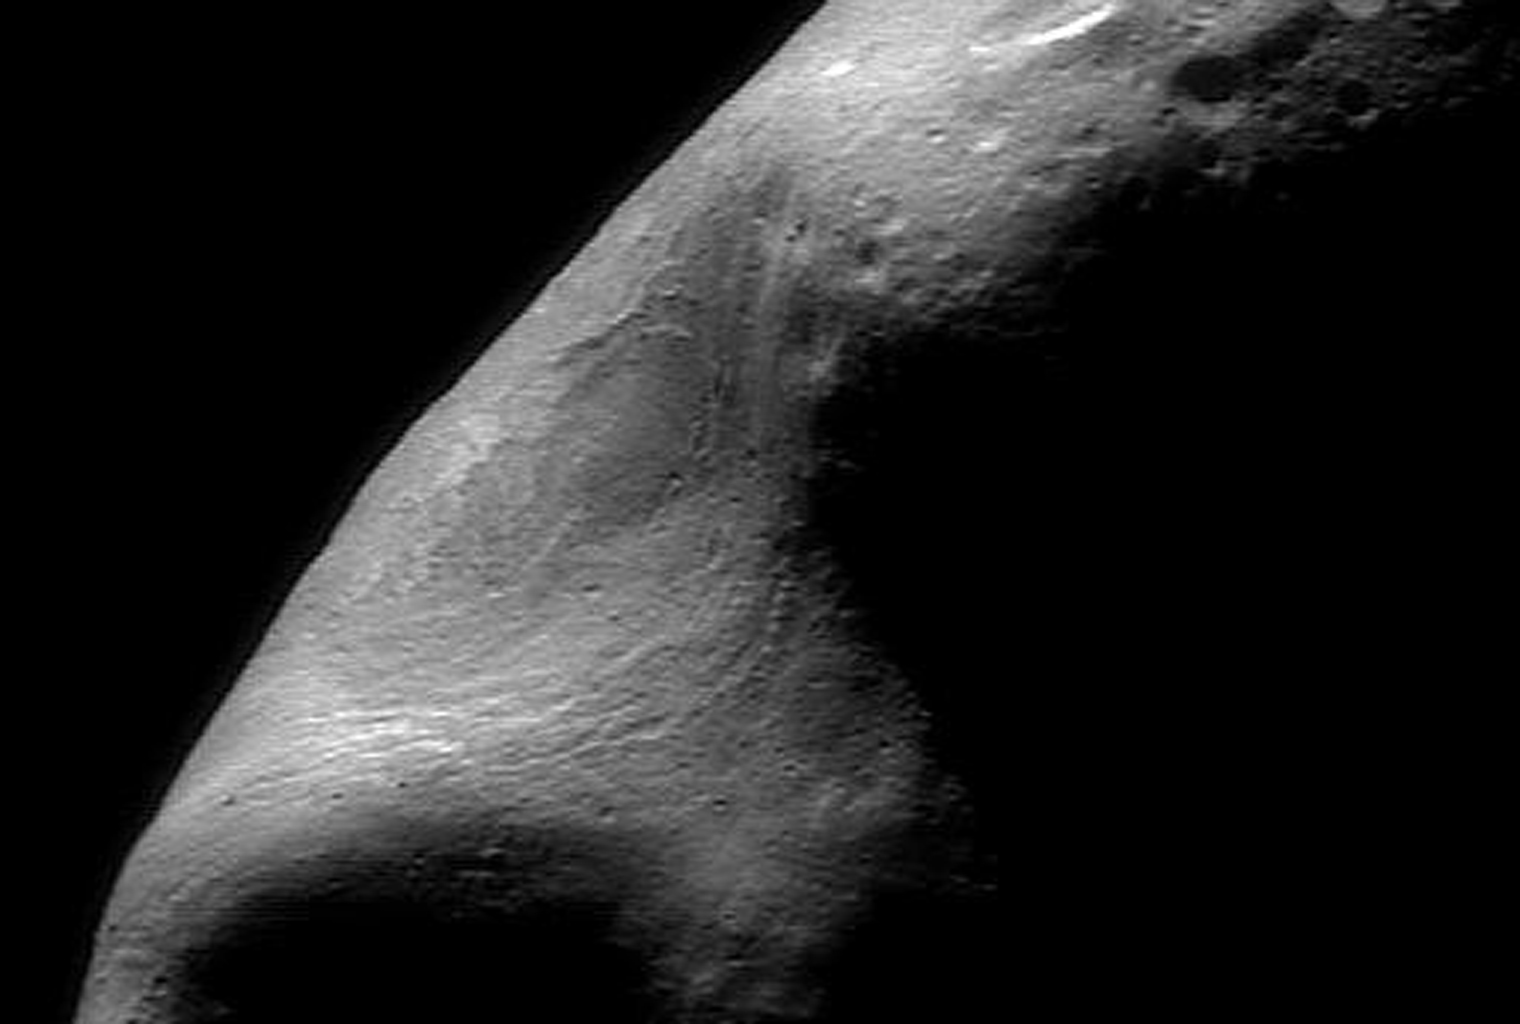 This picture was taken from NASA's NEAR Shoemaker spacecraft on Feb 15, 2000, while the spacecraft was passing directly over the large gouge that creates Eros's characteristic peanut shape.